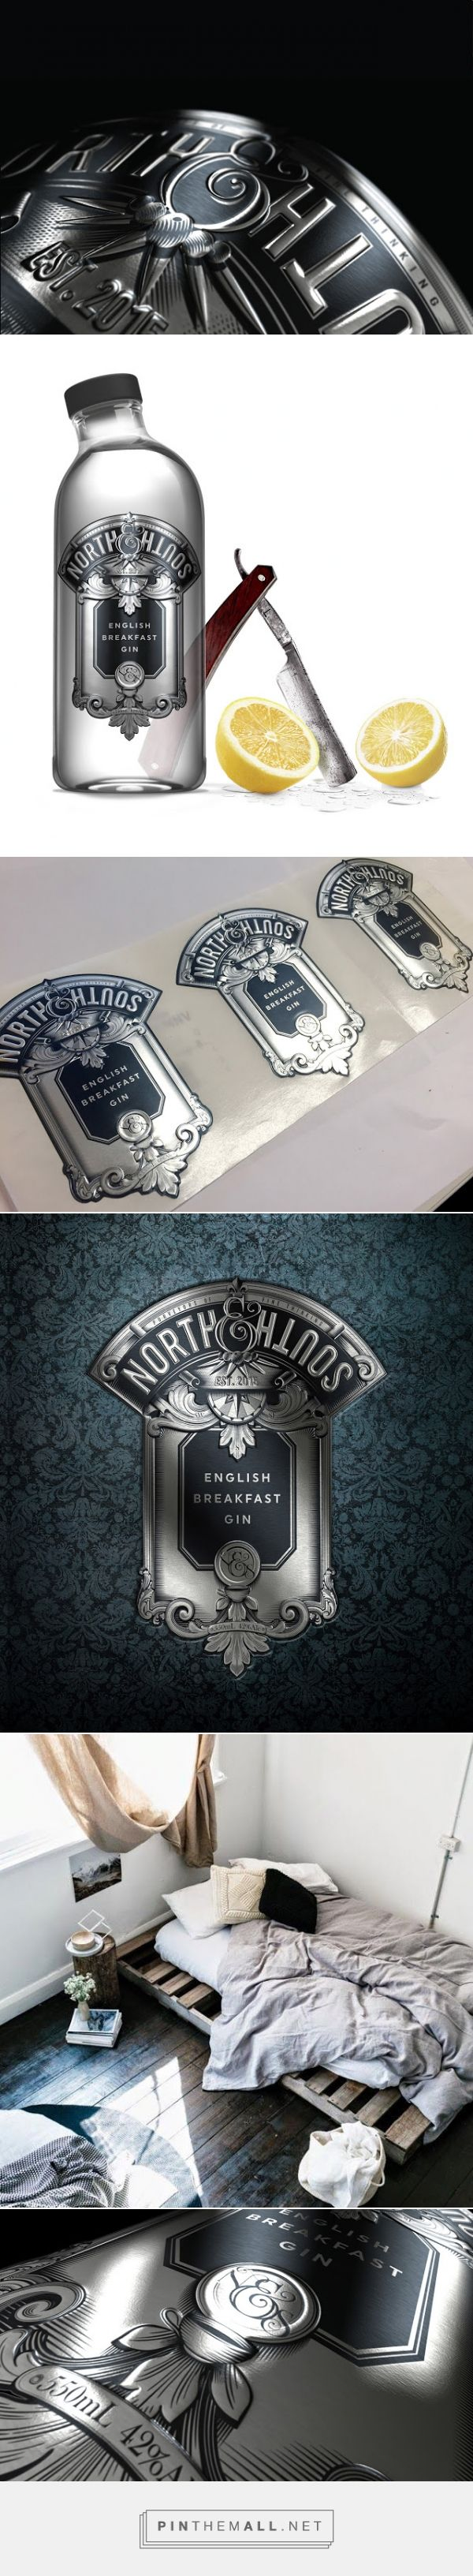 North & South #English Breakfast #Gin #Concept #packaging designed by Ben Chandler - http://www.packagingoftheworld.com/2015/06/north-south-english-breakfast-gin.html